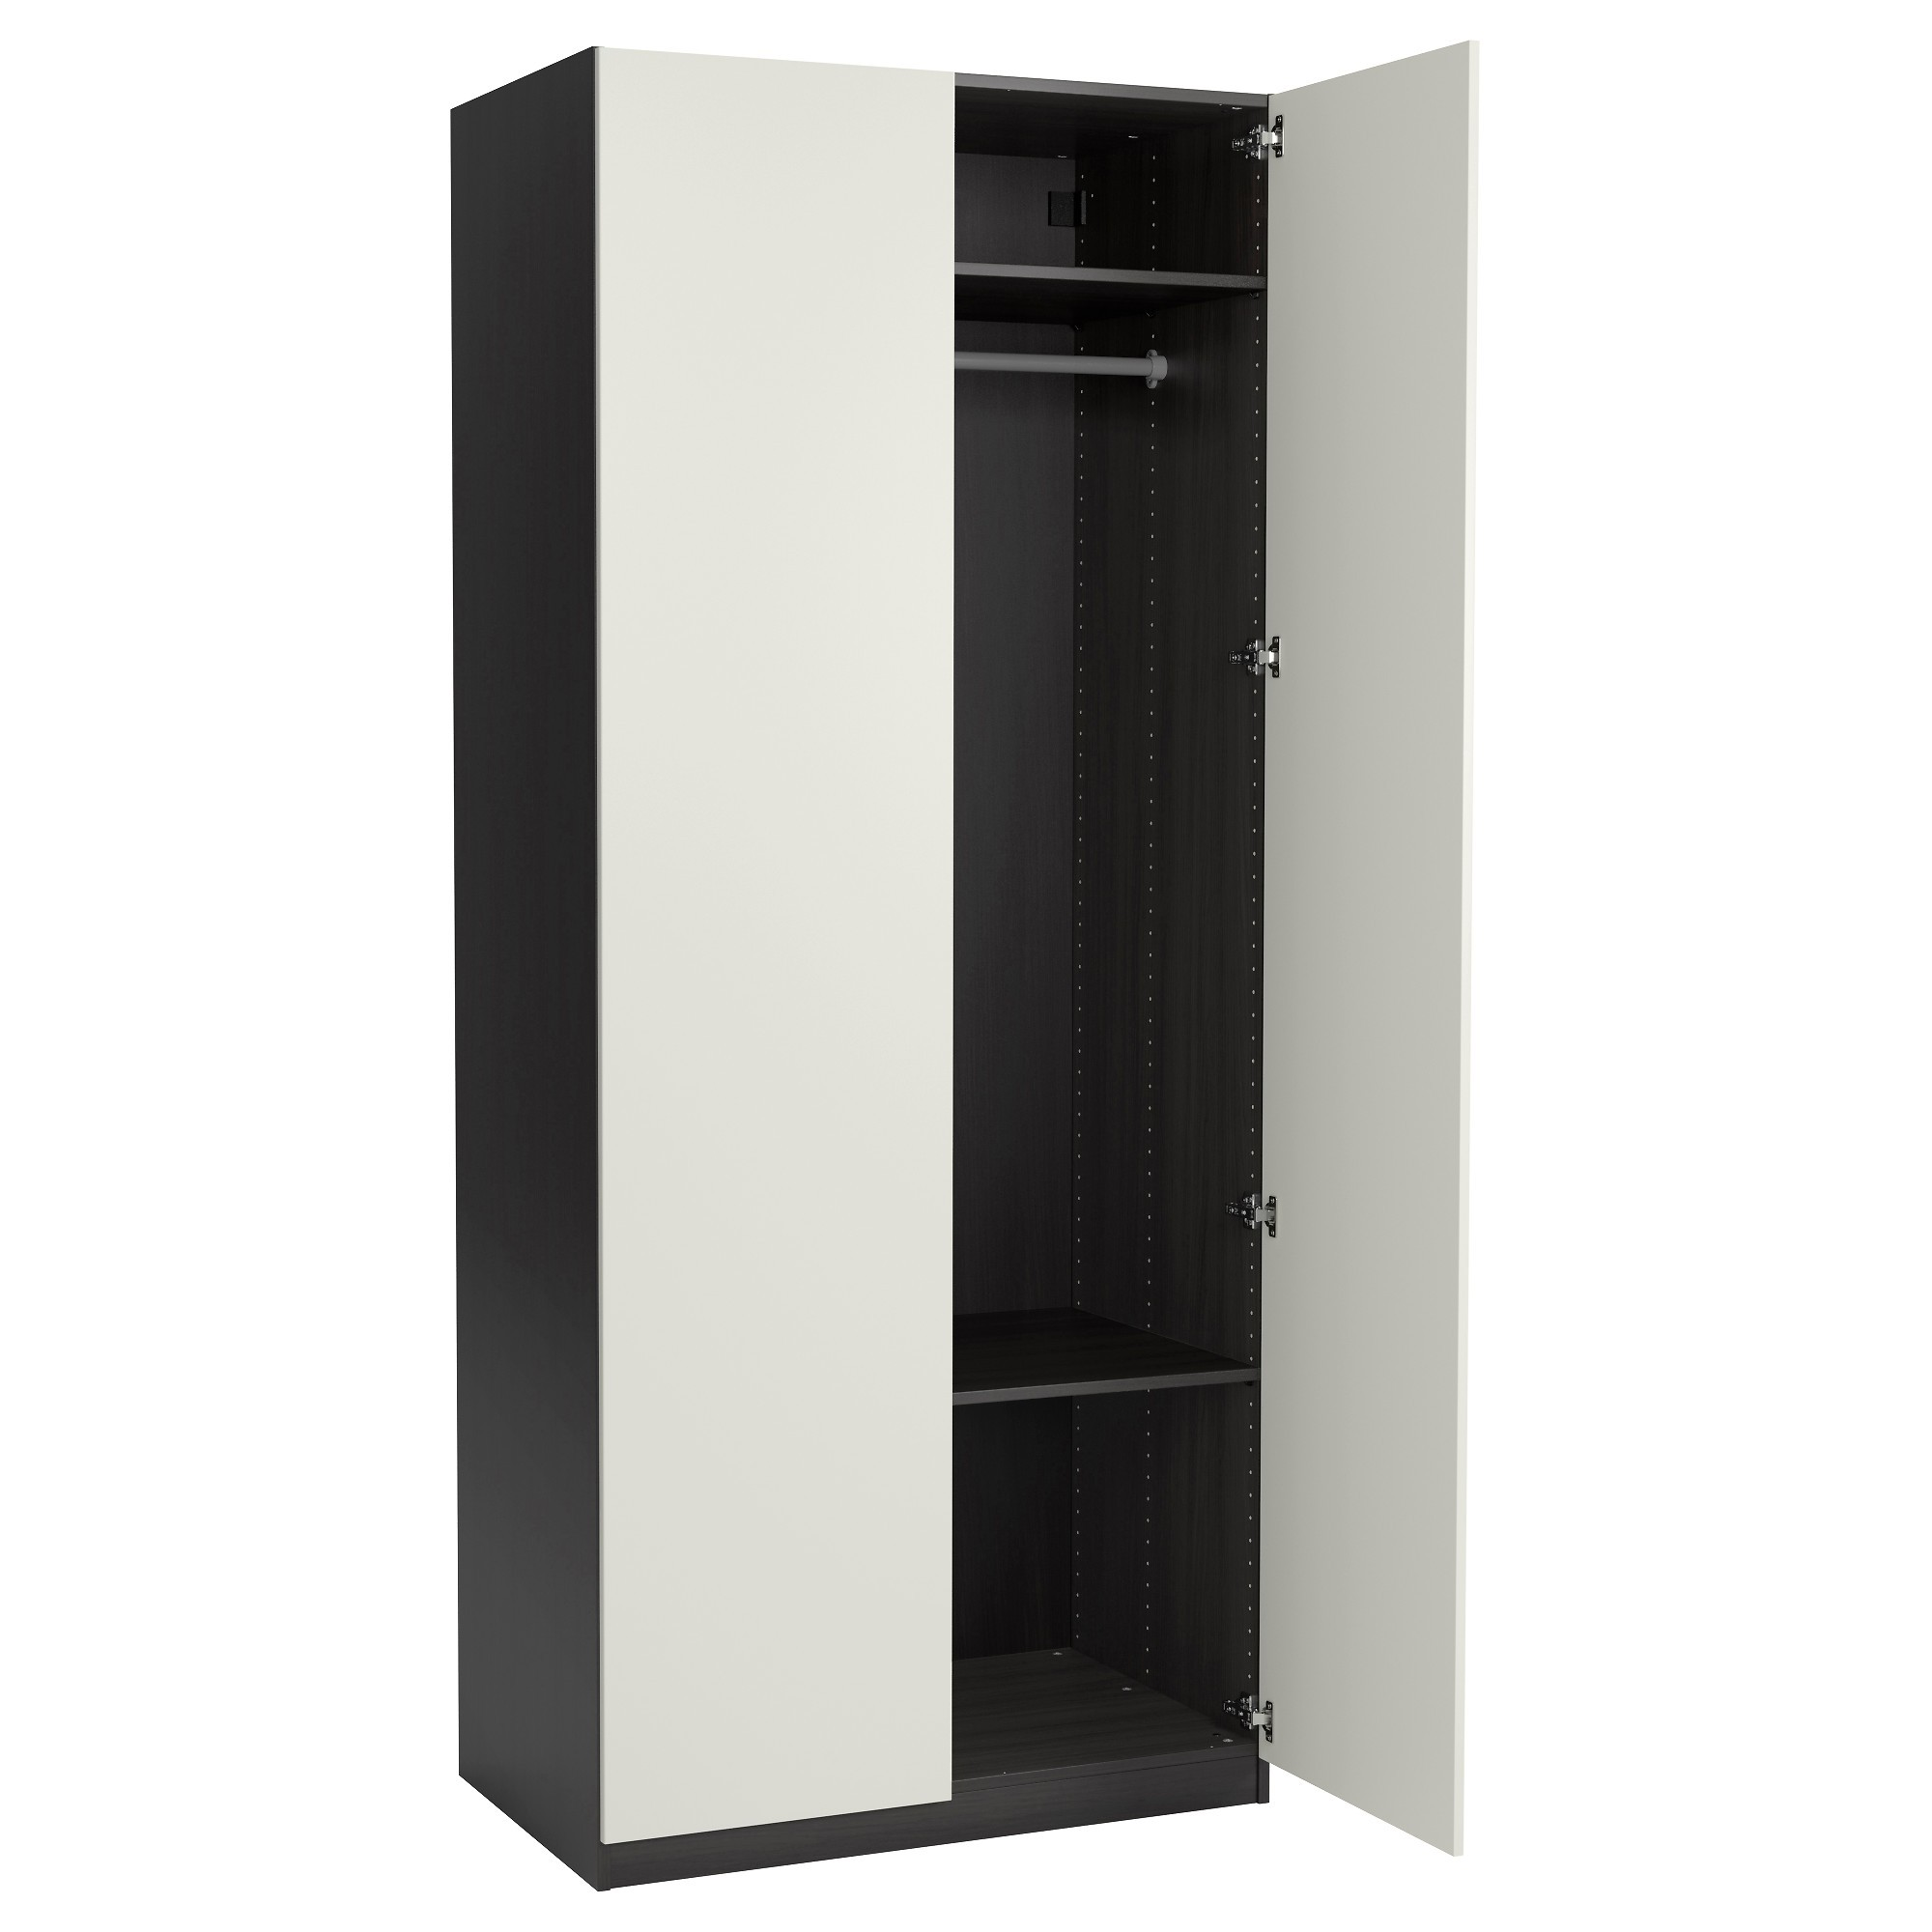 armoire penderie ikea tissu armoire id es de d coration de maison lmb8ylen53. Black Bedroom Furniture Sets. Home Design Ideas